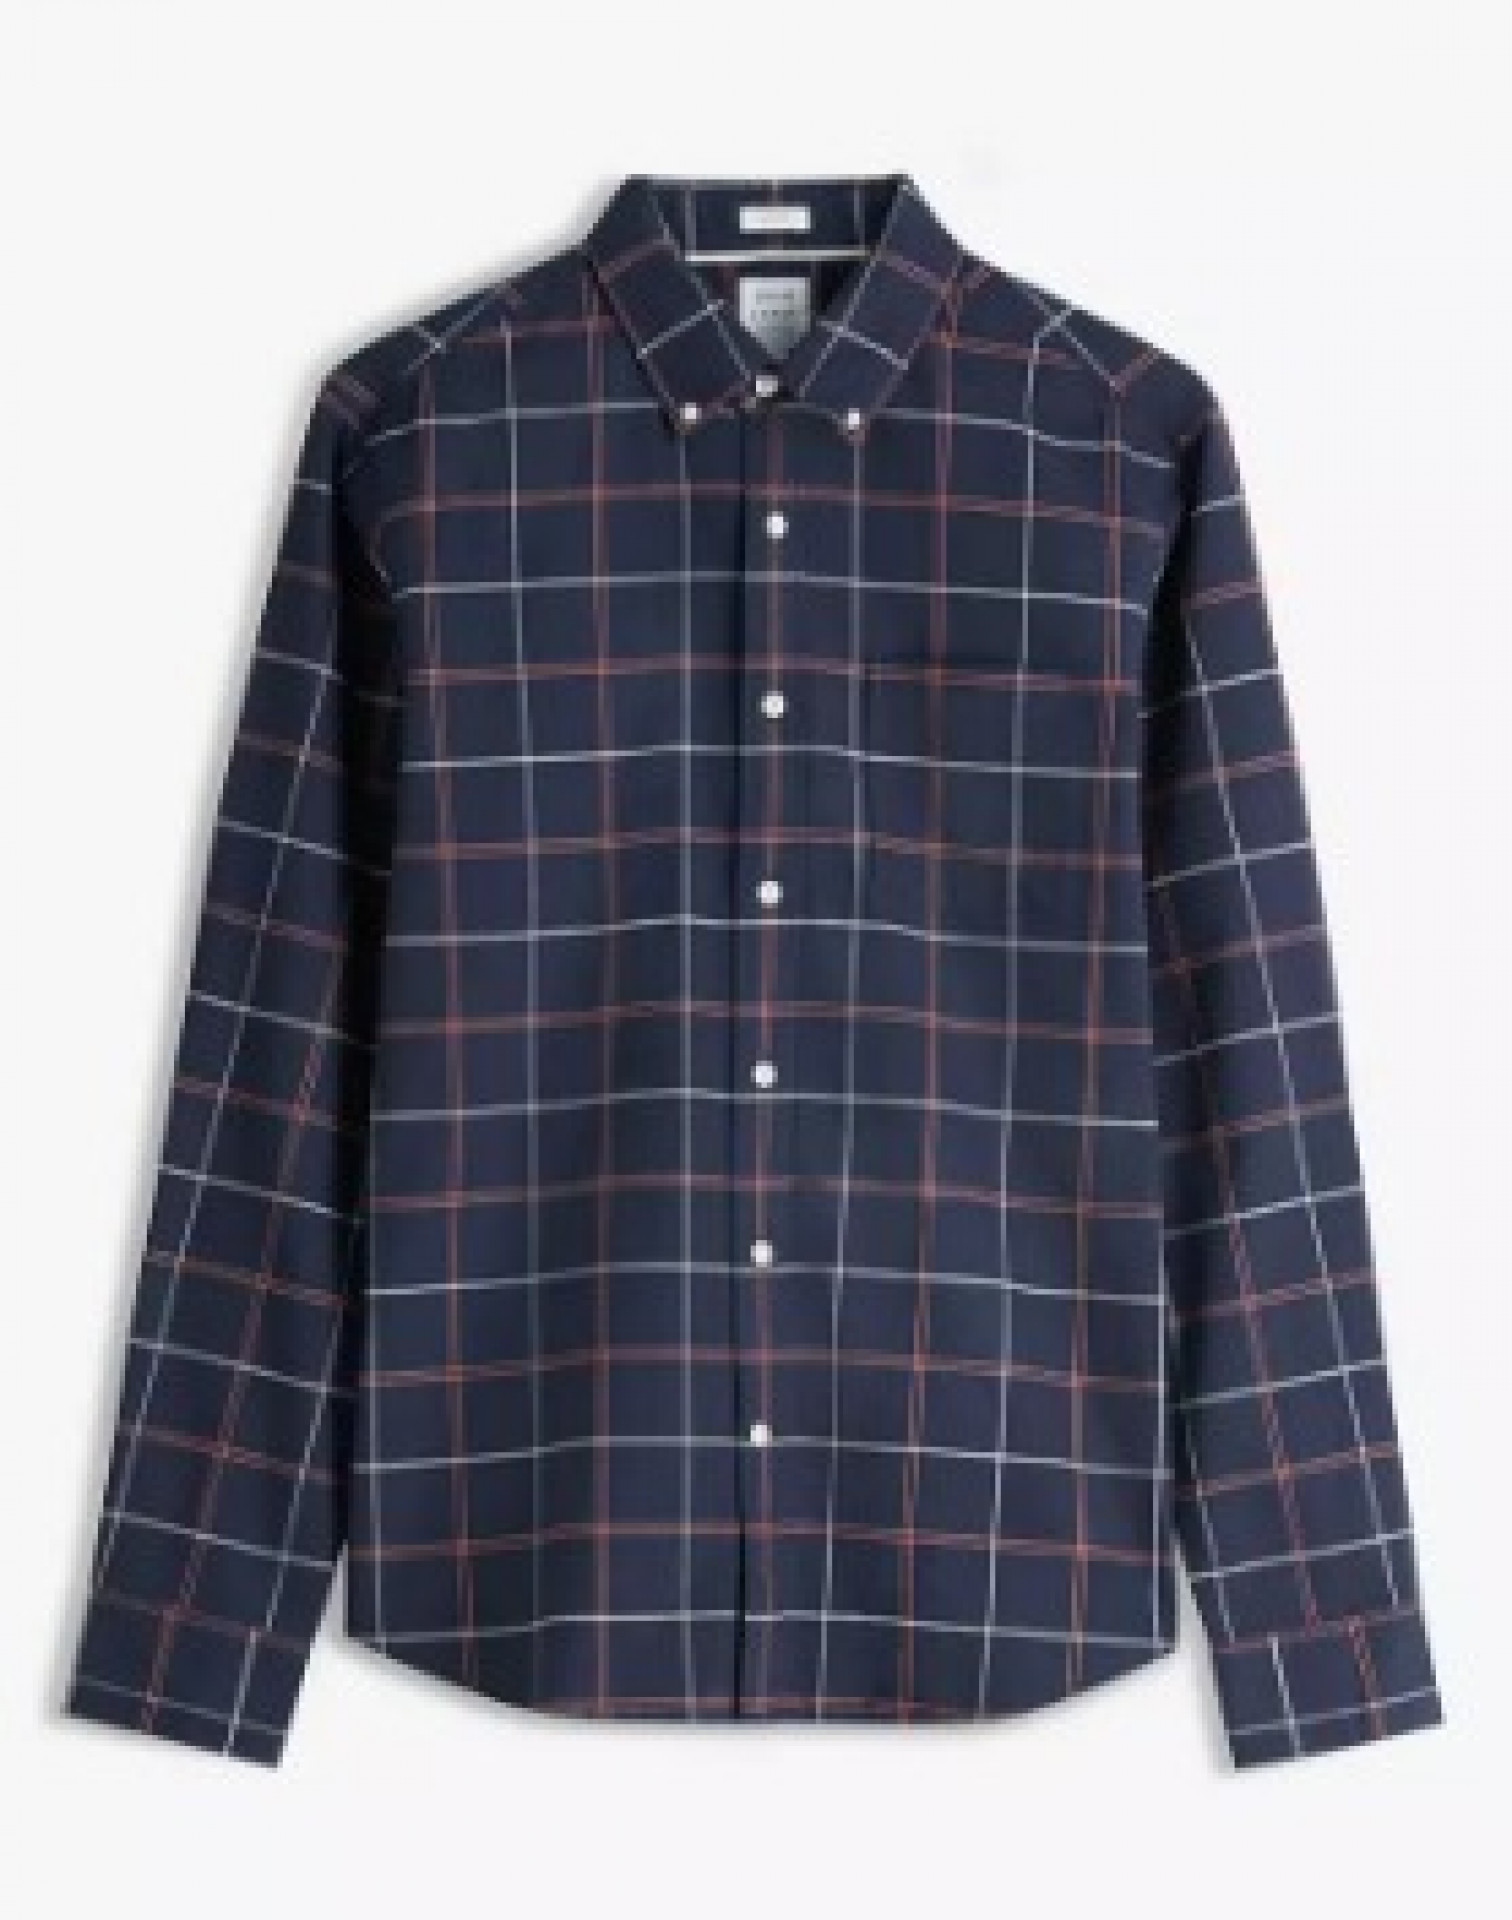 John Lewis & Partners Slim Fit Oxford Windowpane Check Shirt, Navy